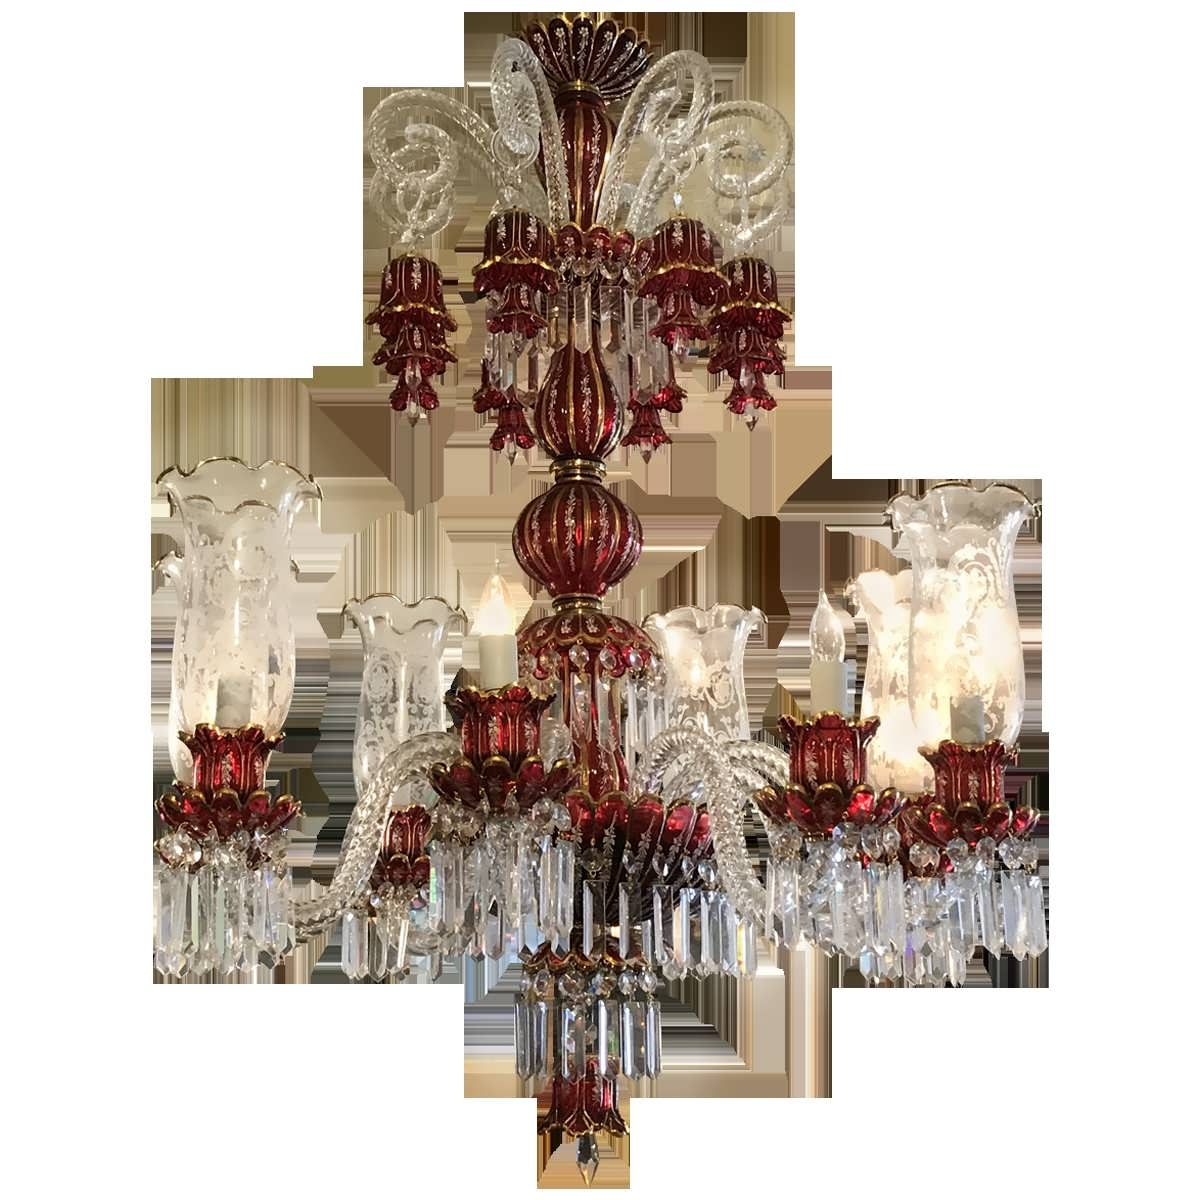 Turquoise Antler Chandeliers Throughout Latest Chandelier : Kitchen Chandelier Turquoise Chandelier Antler (View 6 of 15)